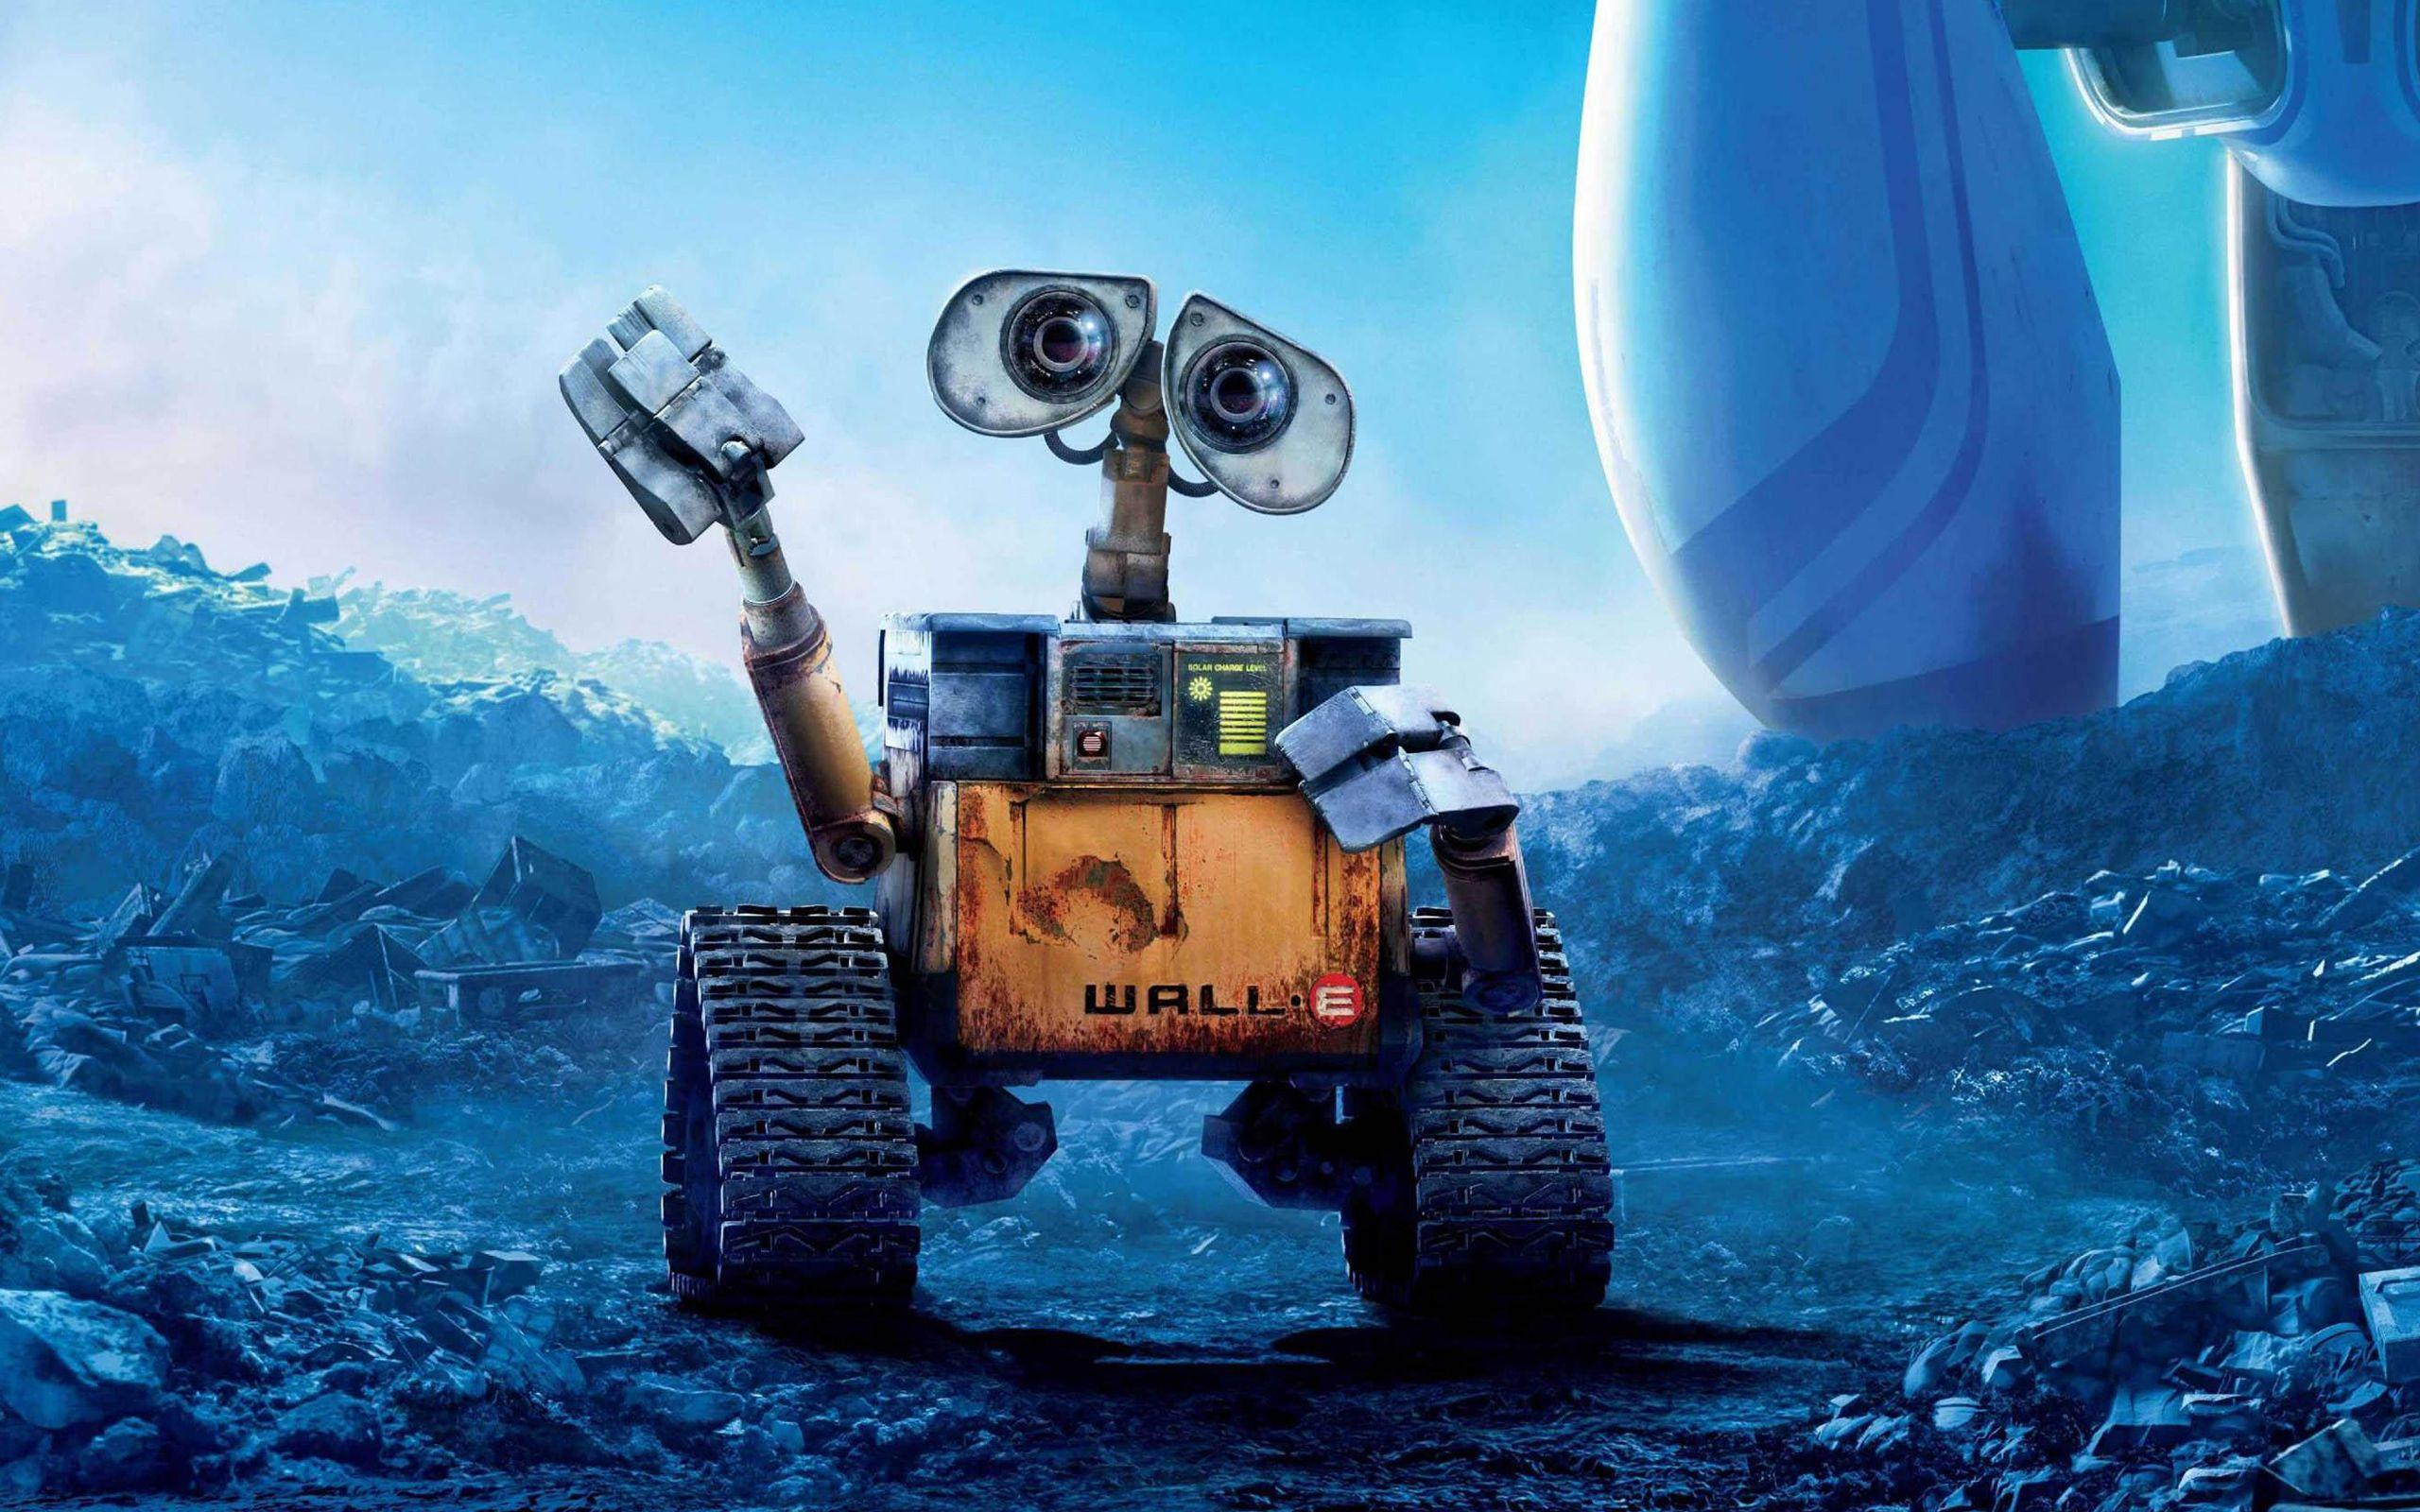 WALL-E Wallpapers - Wallpaper Cave